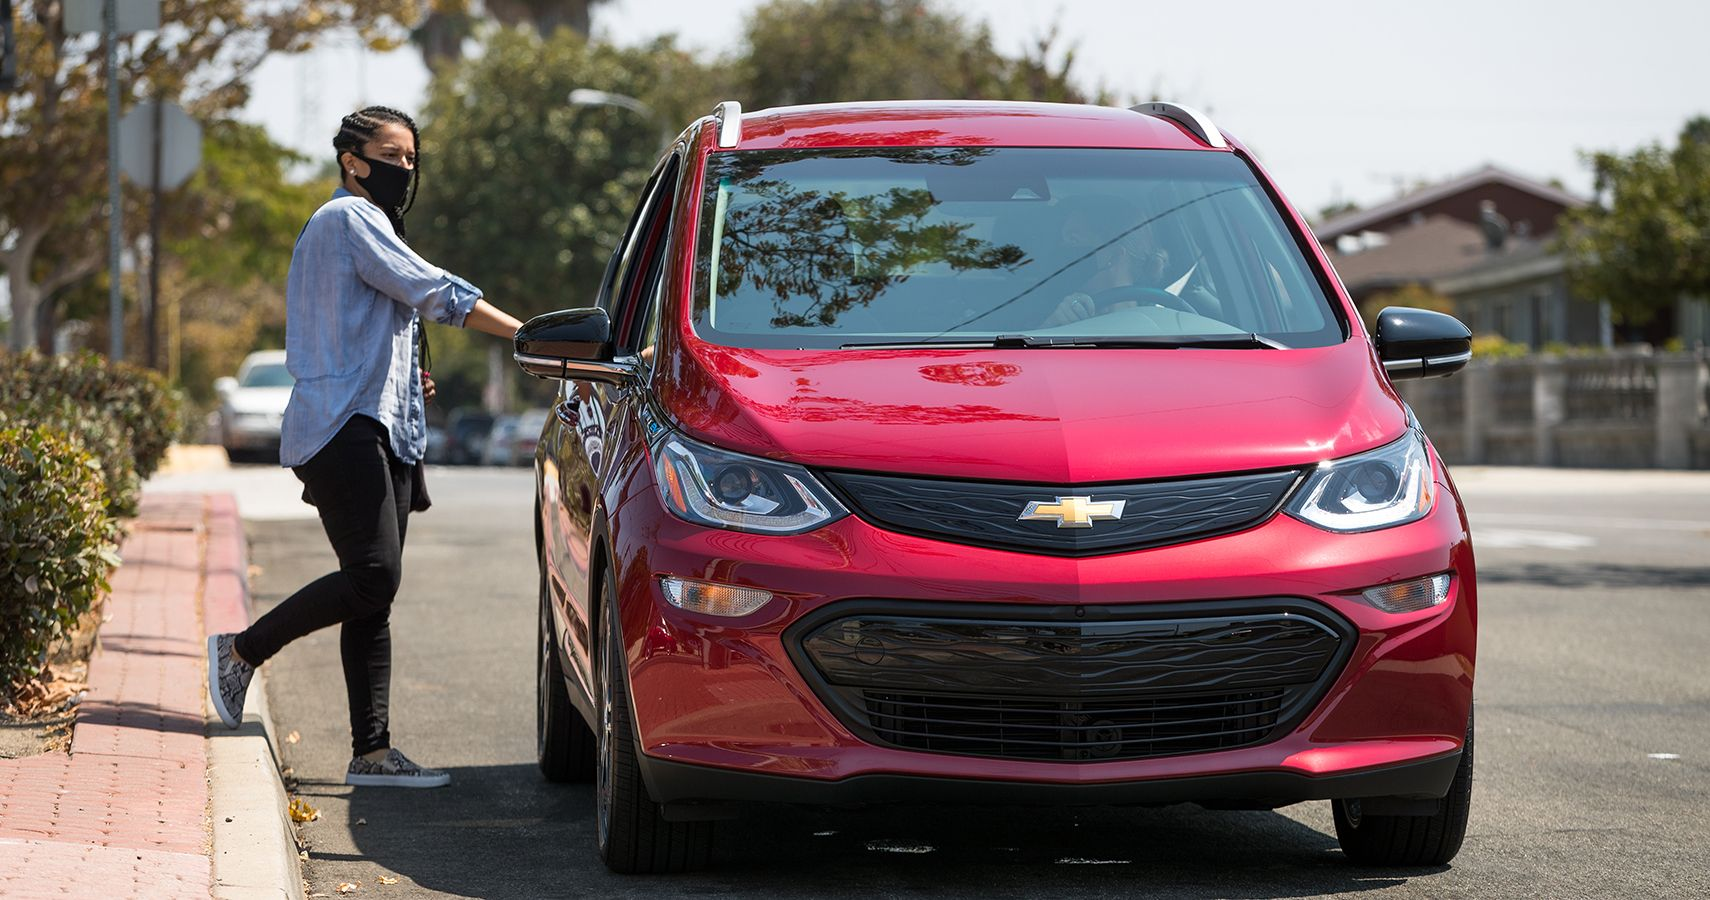 GM Offering 20 Percent Discount On New Chevrolet Bolt EVs For Uber Drivers